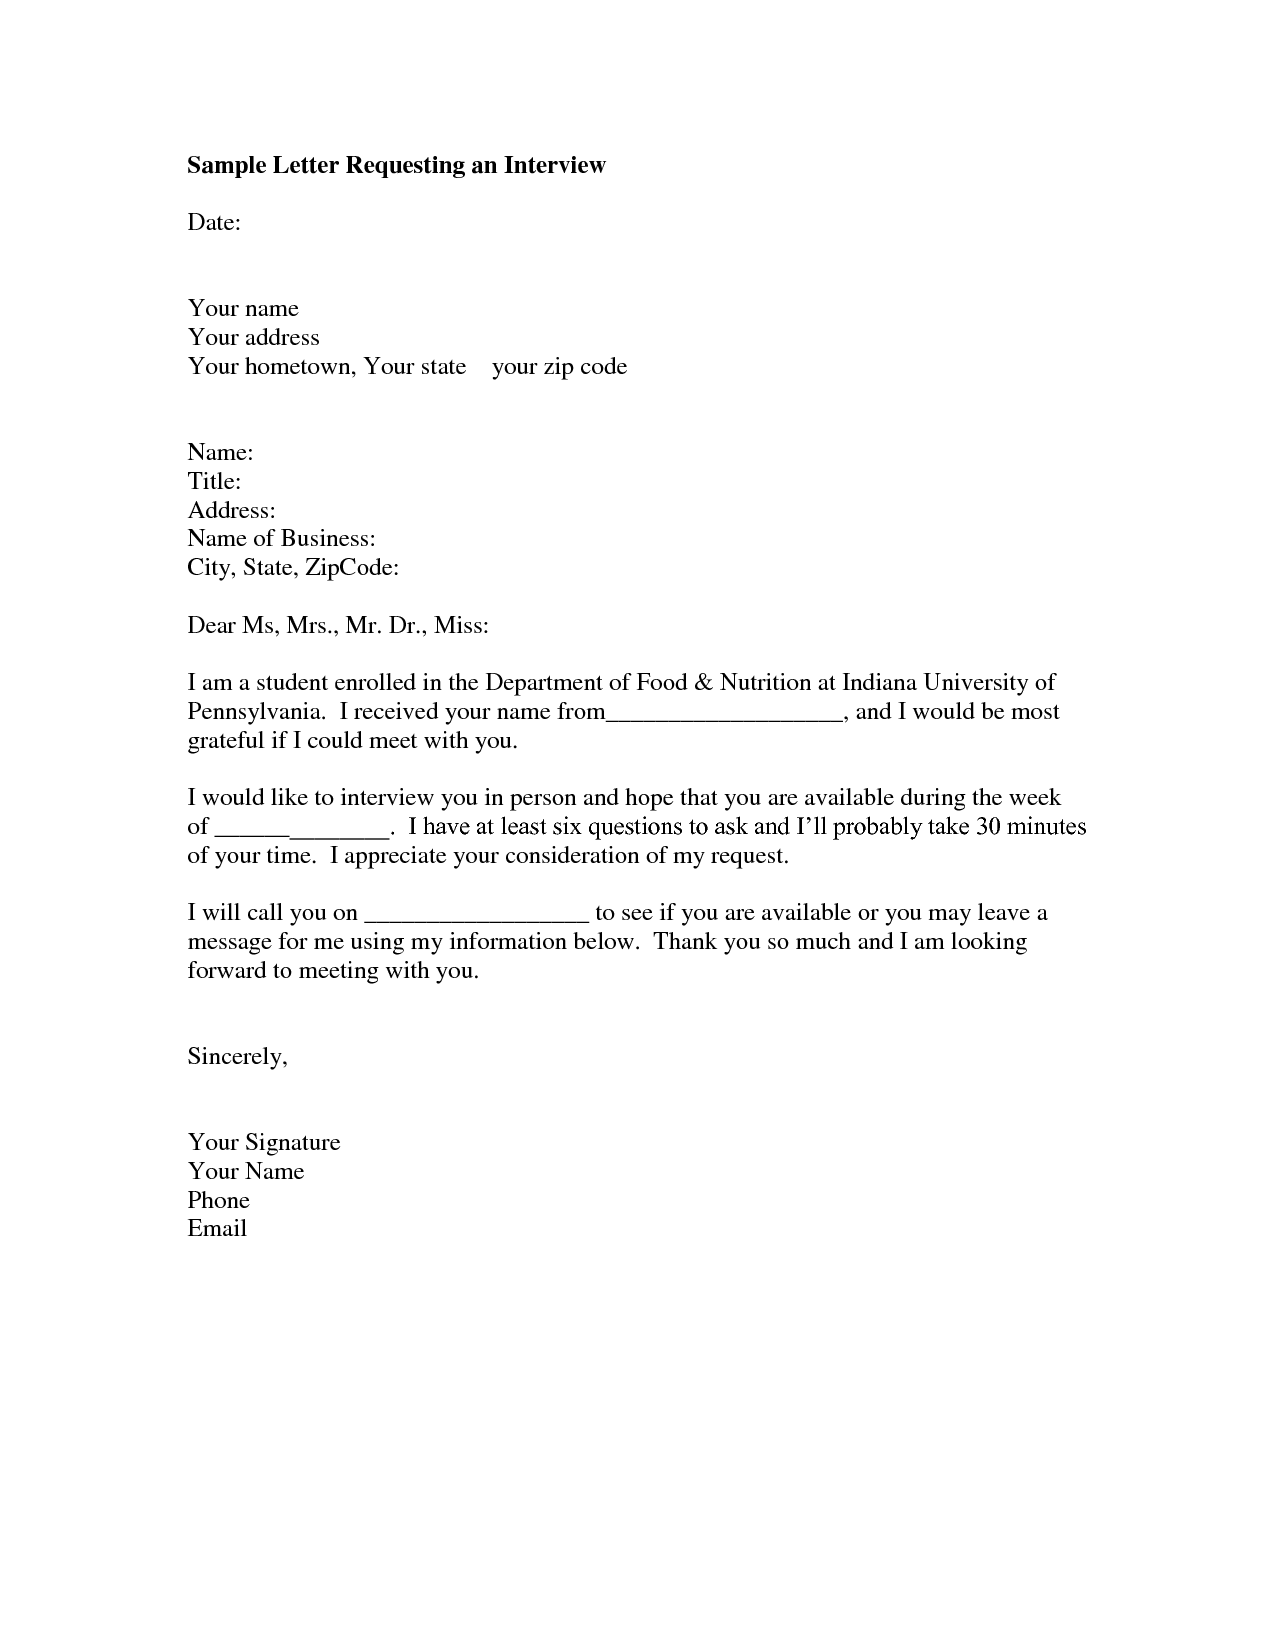 Interview request letter sample format of a letter you can use interview request letter sample format of a letter you can use to request an interview spiritdancerdesigns Gallery